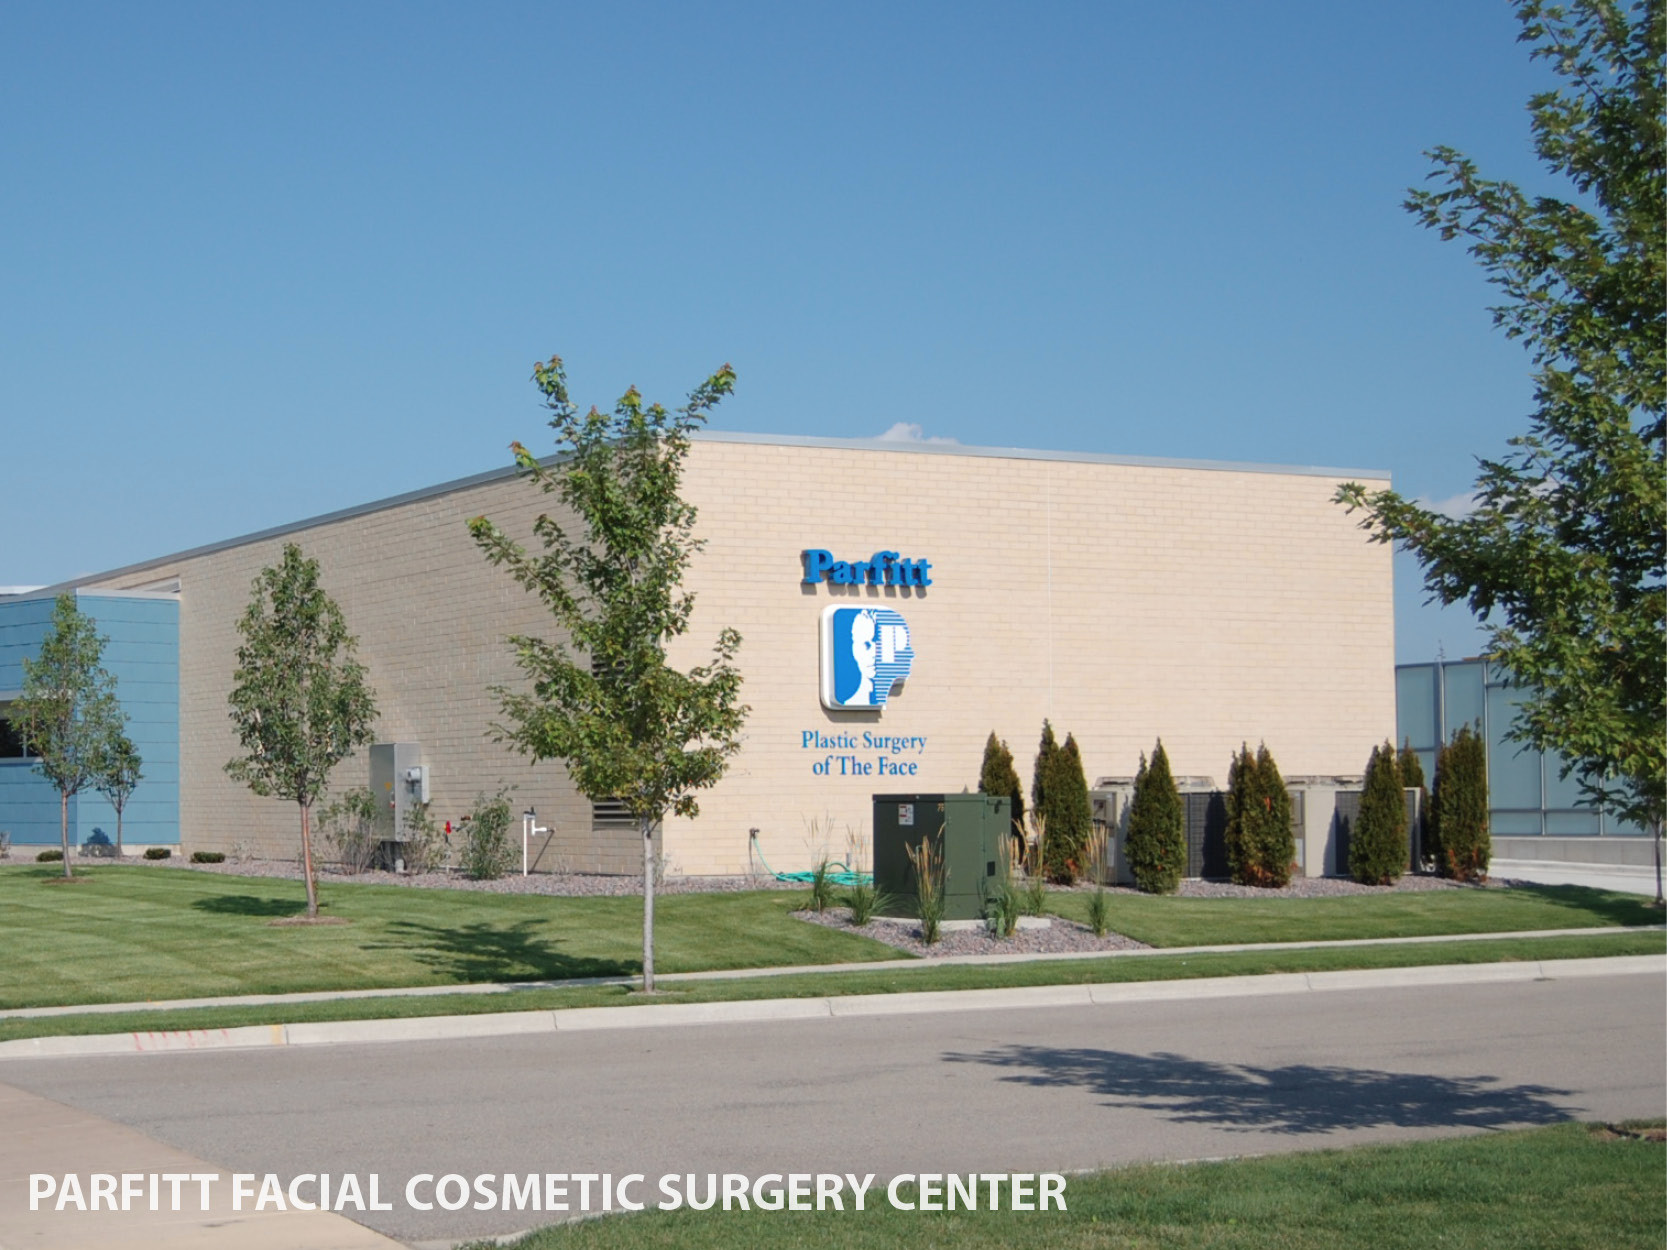 Center for facial cosmetic